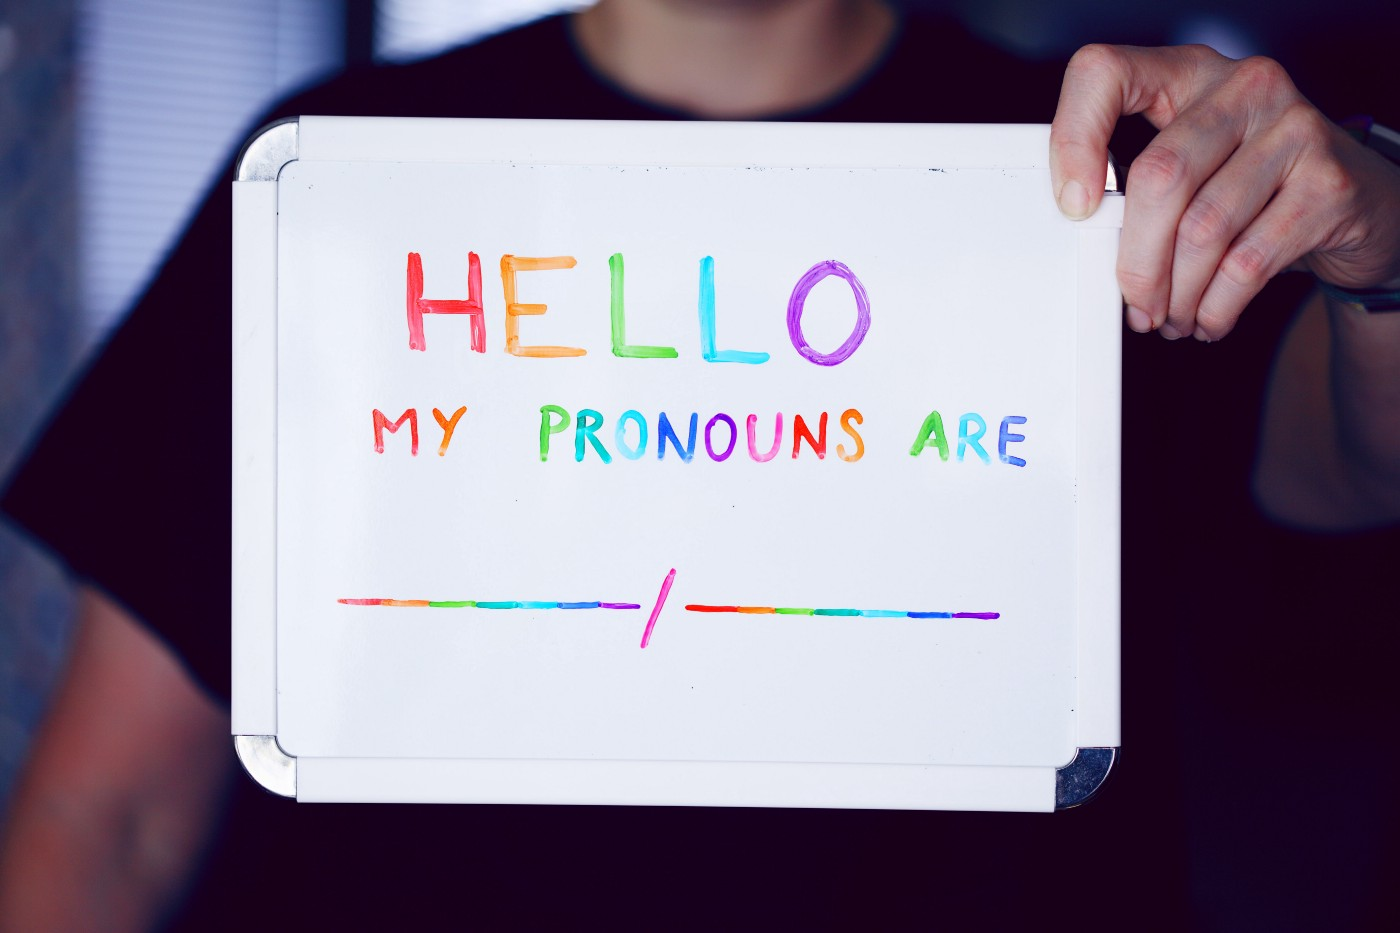 Pronoun sign with blank space written in rainbow colors